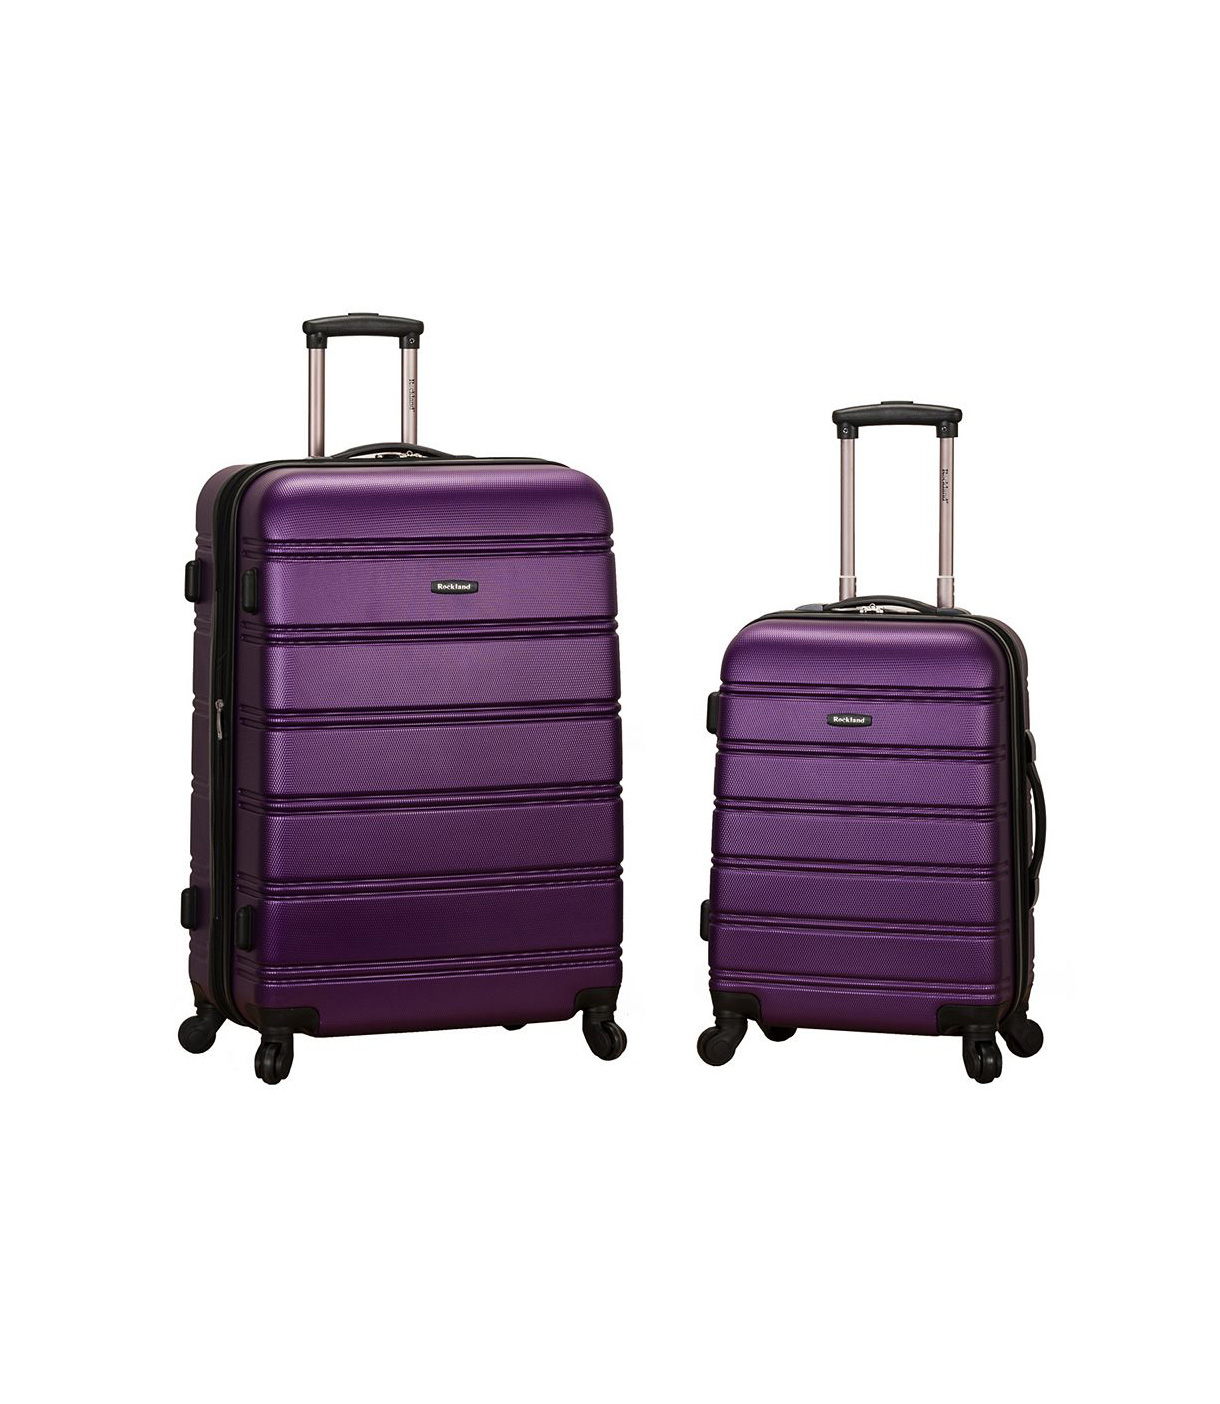 Rockland 2 Piece Hardside Spinner Luggage Set